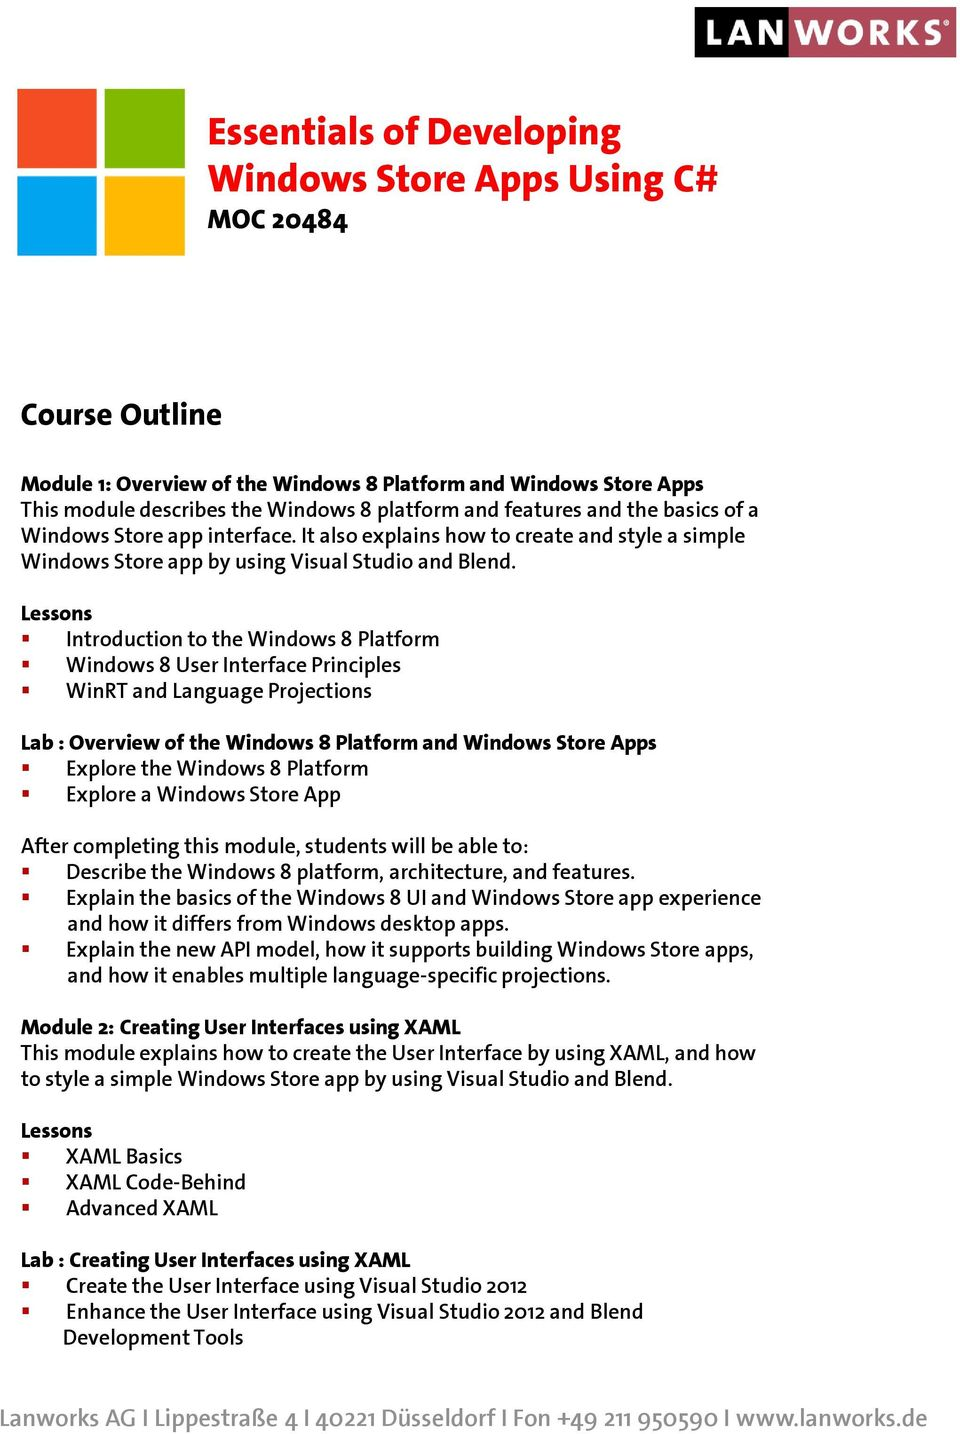 Introduction to the Windows 8 Platform Windows 8 User Interface Principles WinRT and Language Projections Lab : Overview of the Windows 8 Platform and Windows Store Apps Explore the Windows 8